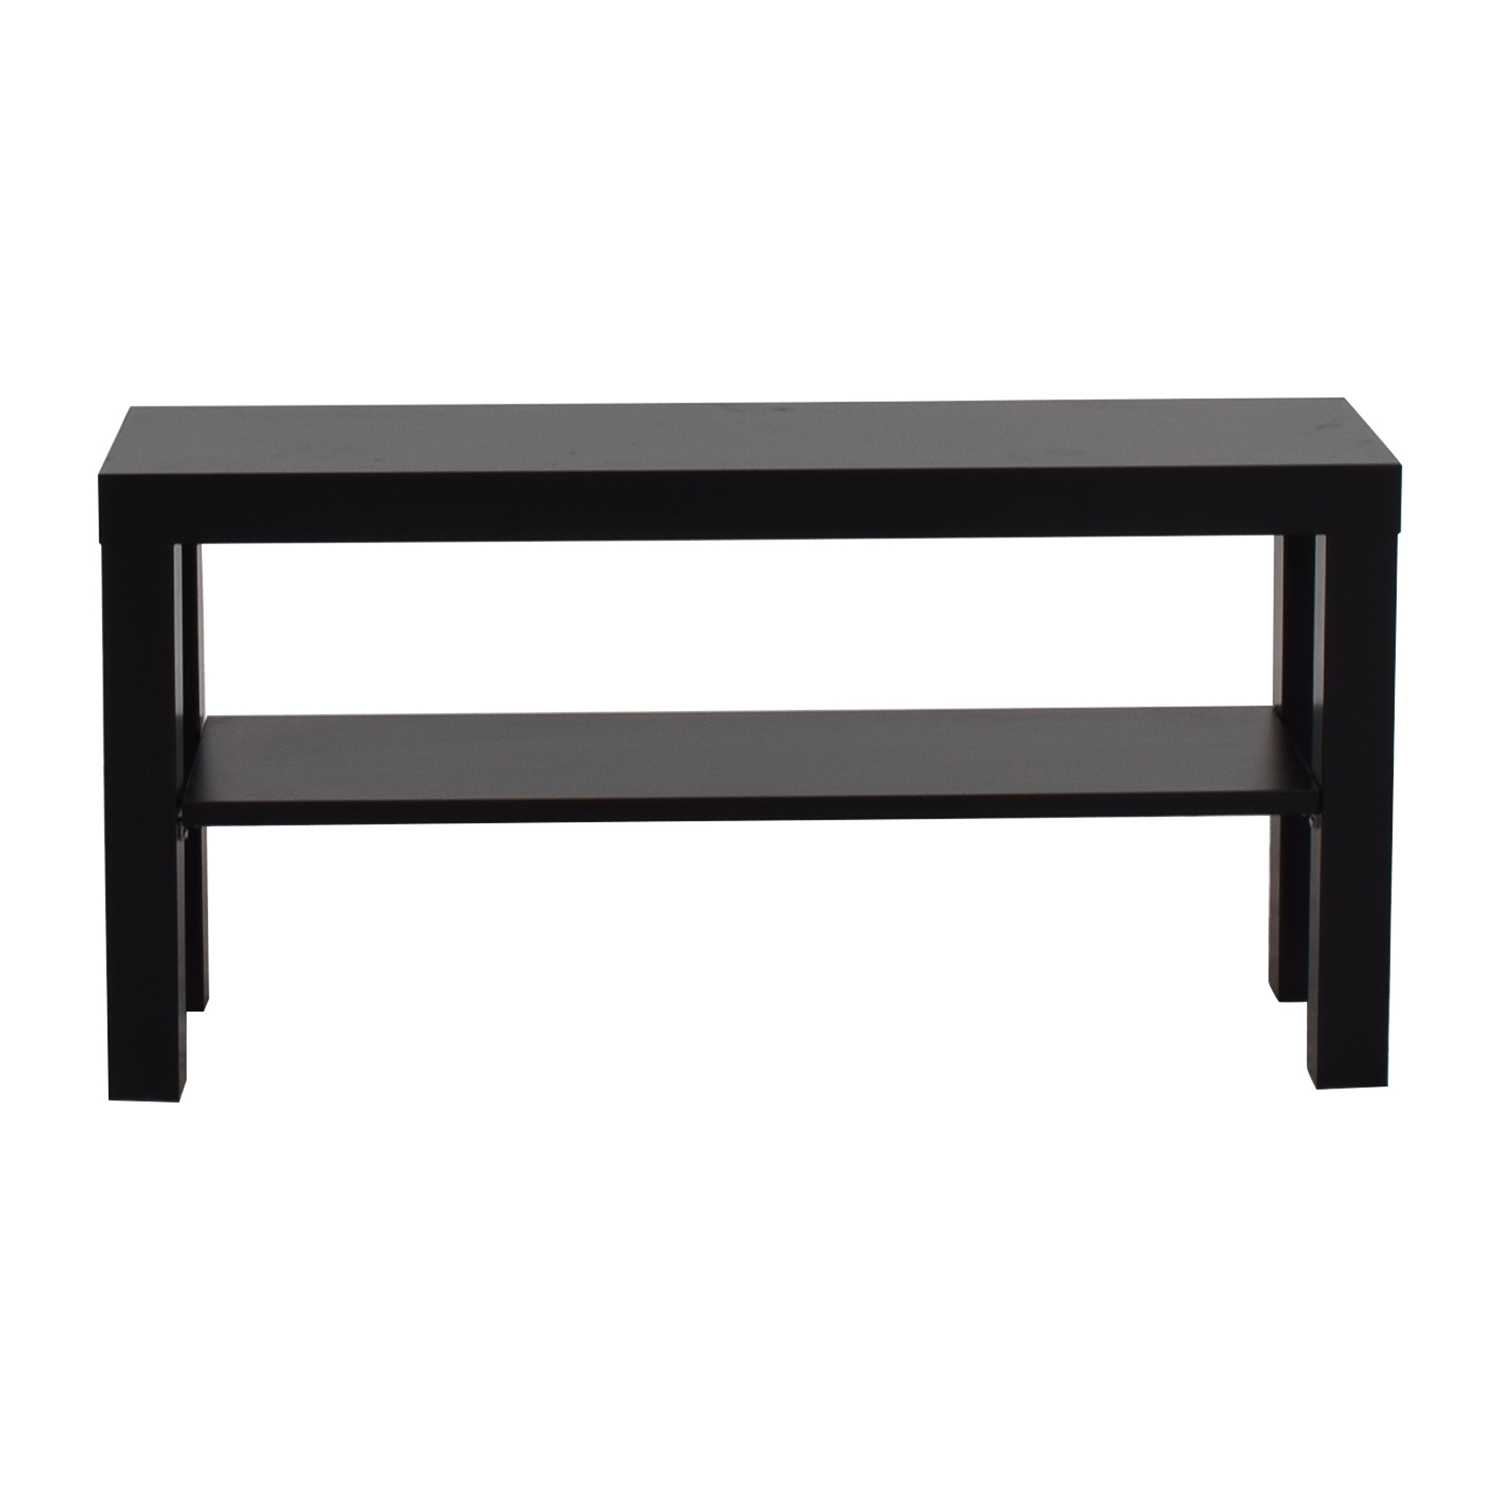 buy IKEA Lack Black TV Stand IKEA Storage